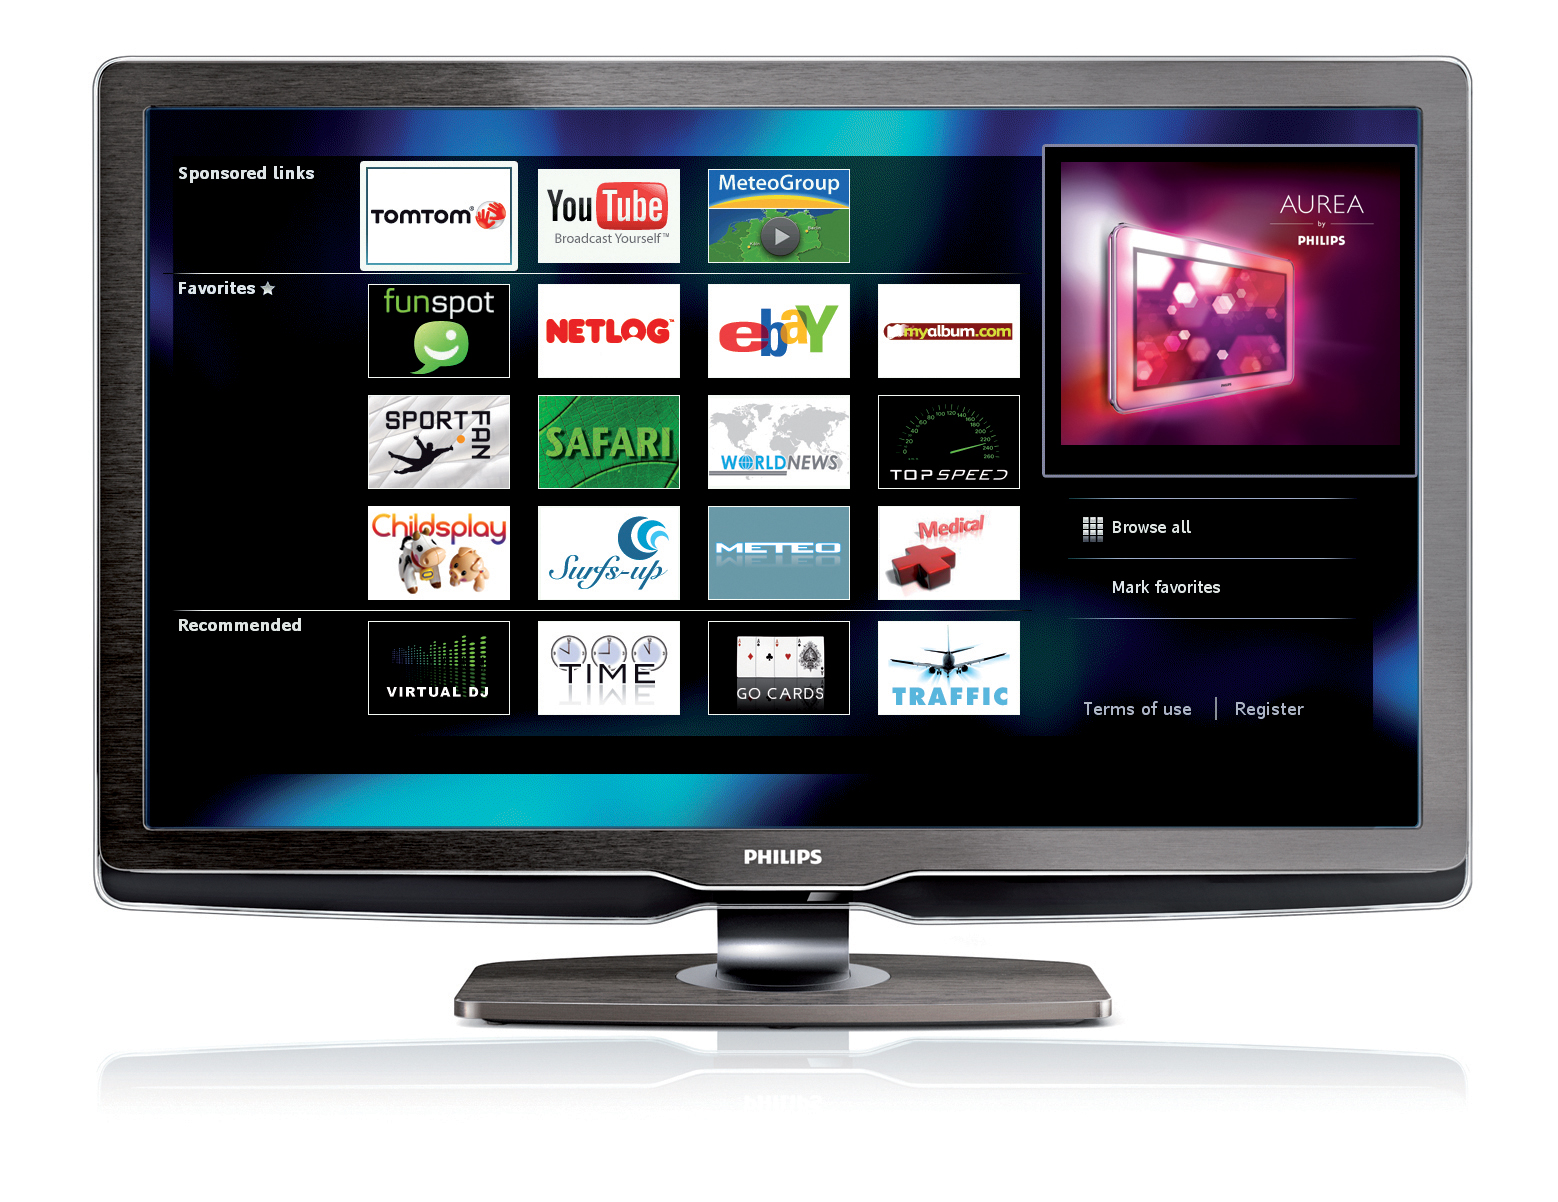 philips disables smart tv functionality